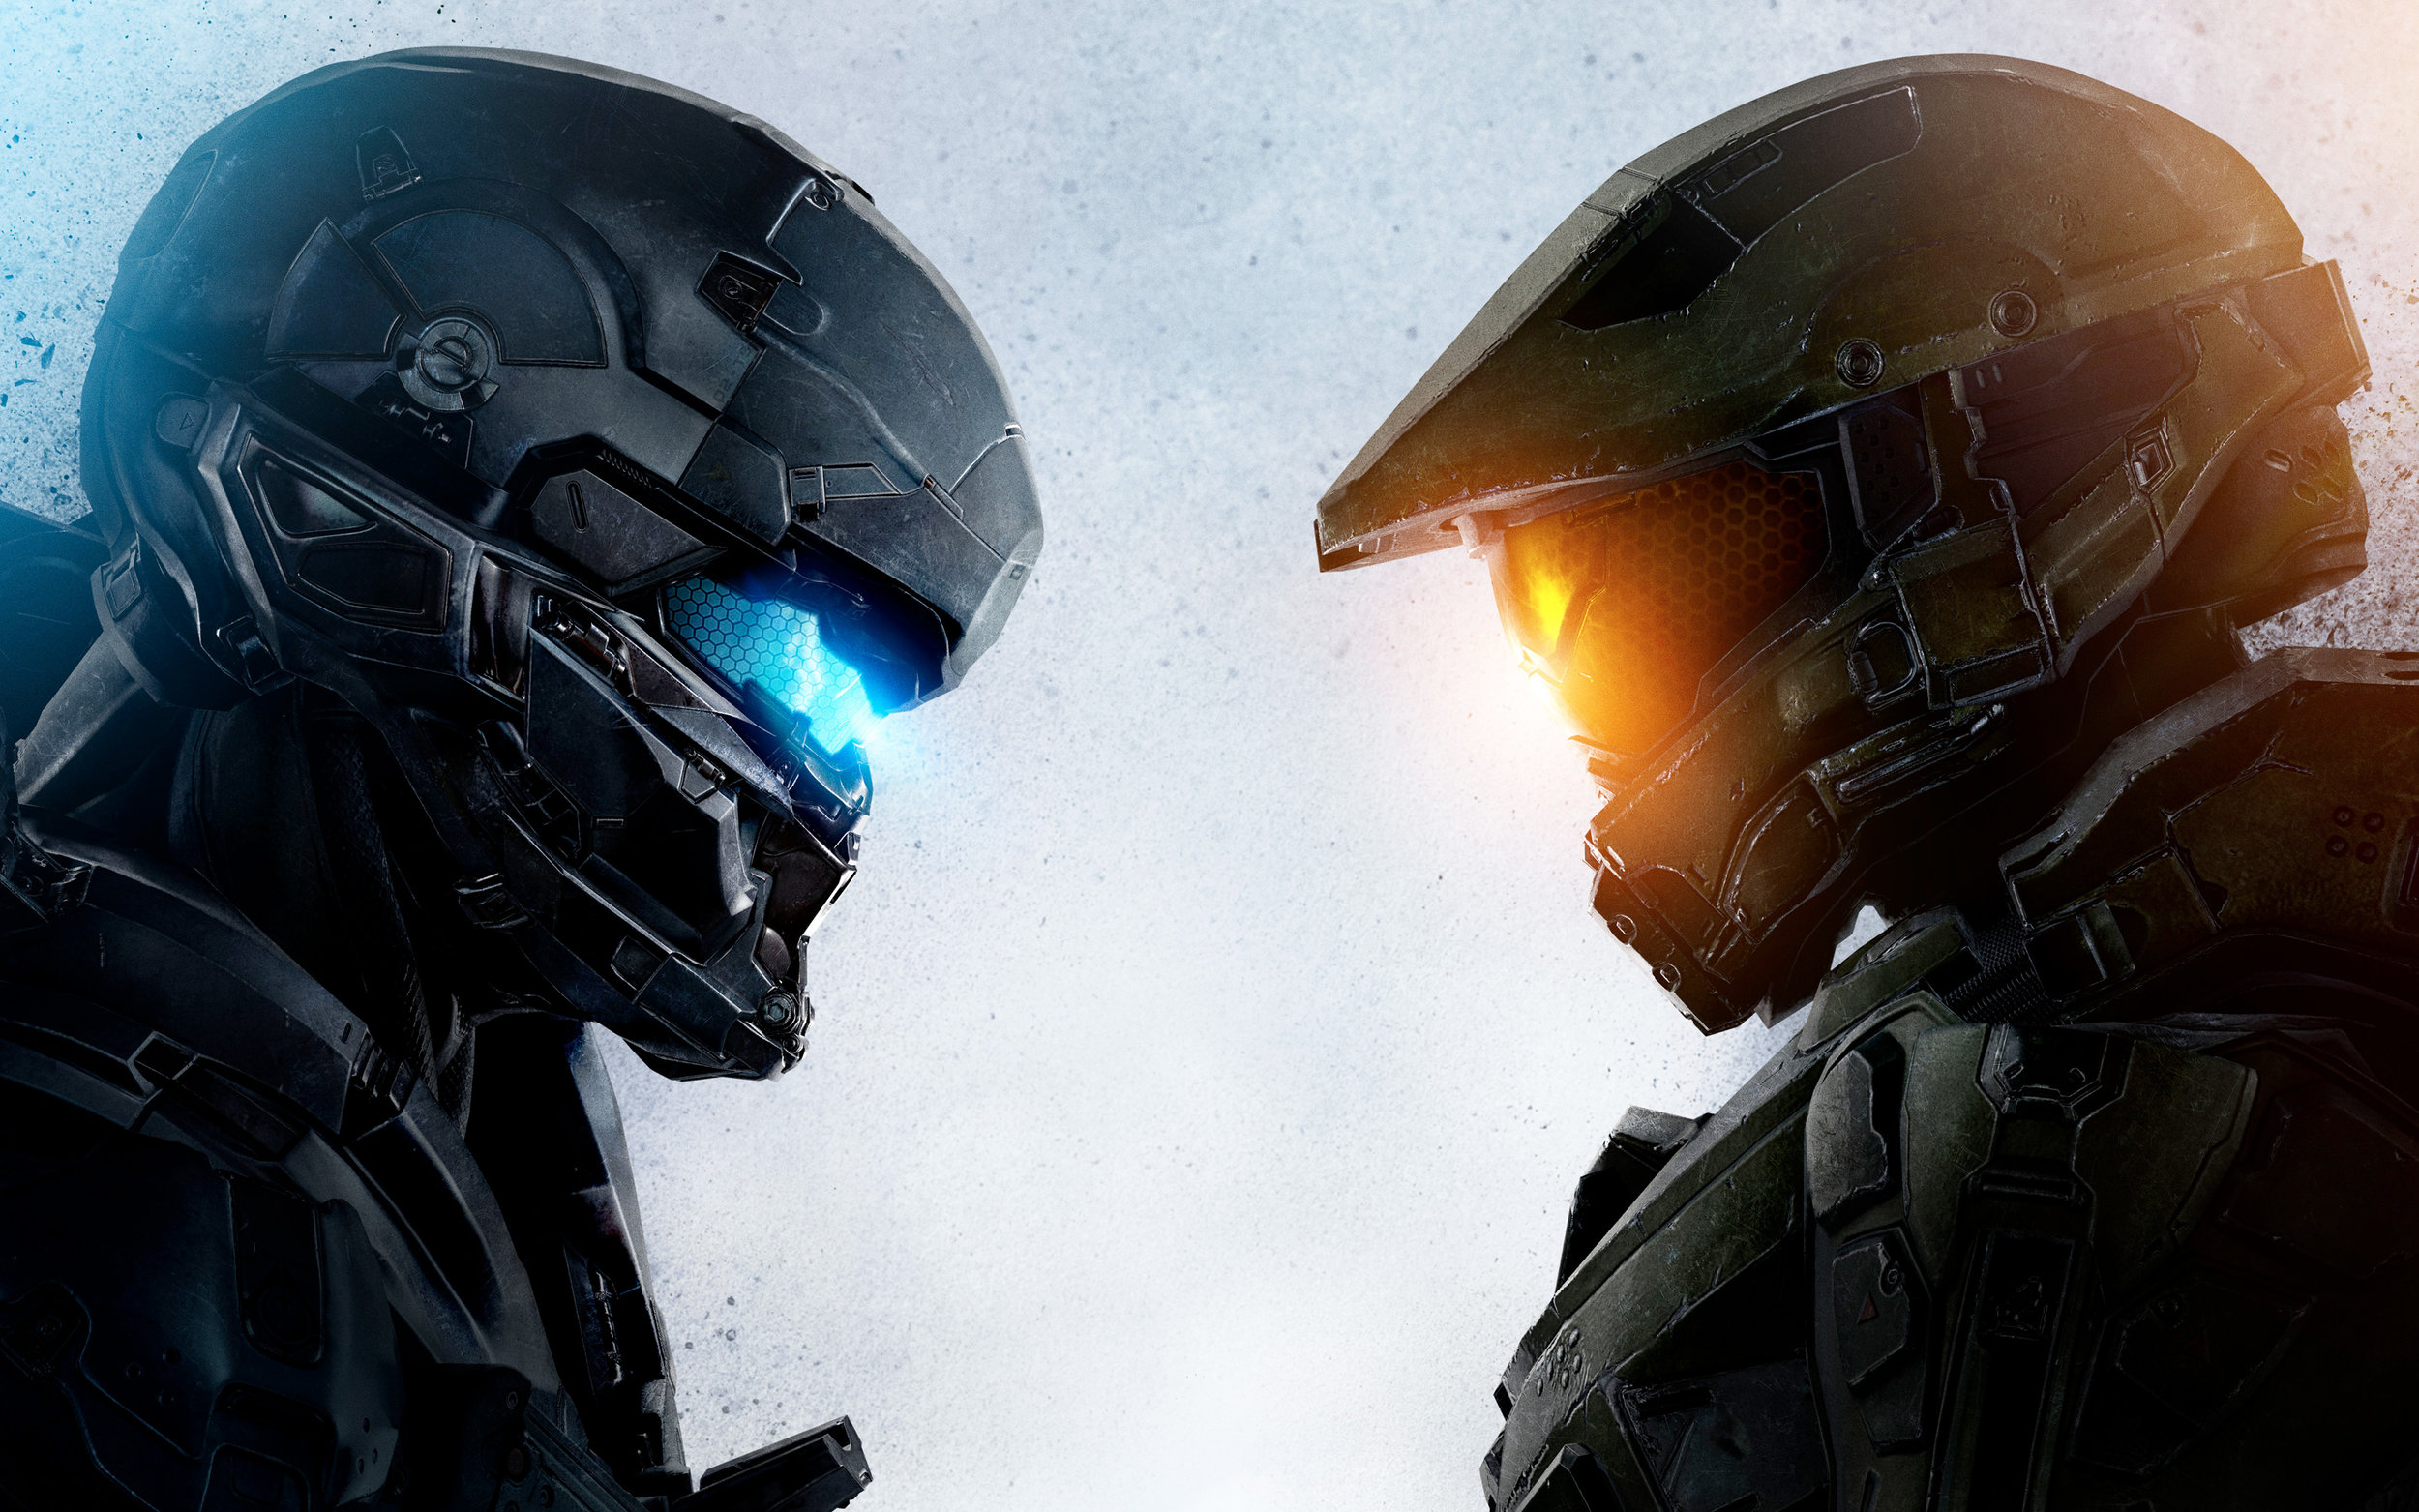 Ah yes  Halo 5 , the story of an epic showdown between two Spartan supersoldiers that is resolved after one short fist fight practically half-way through the game.